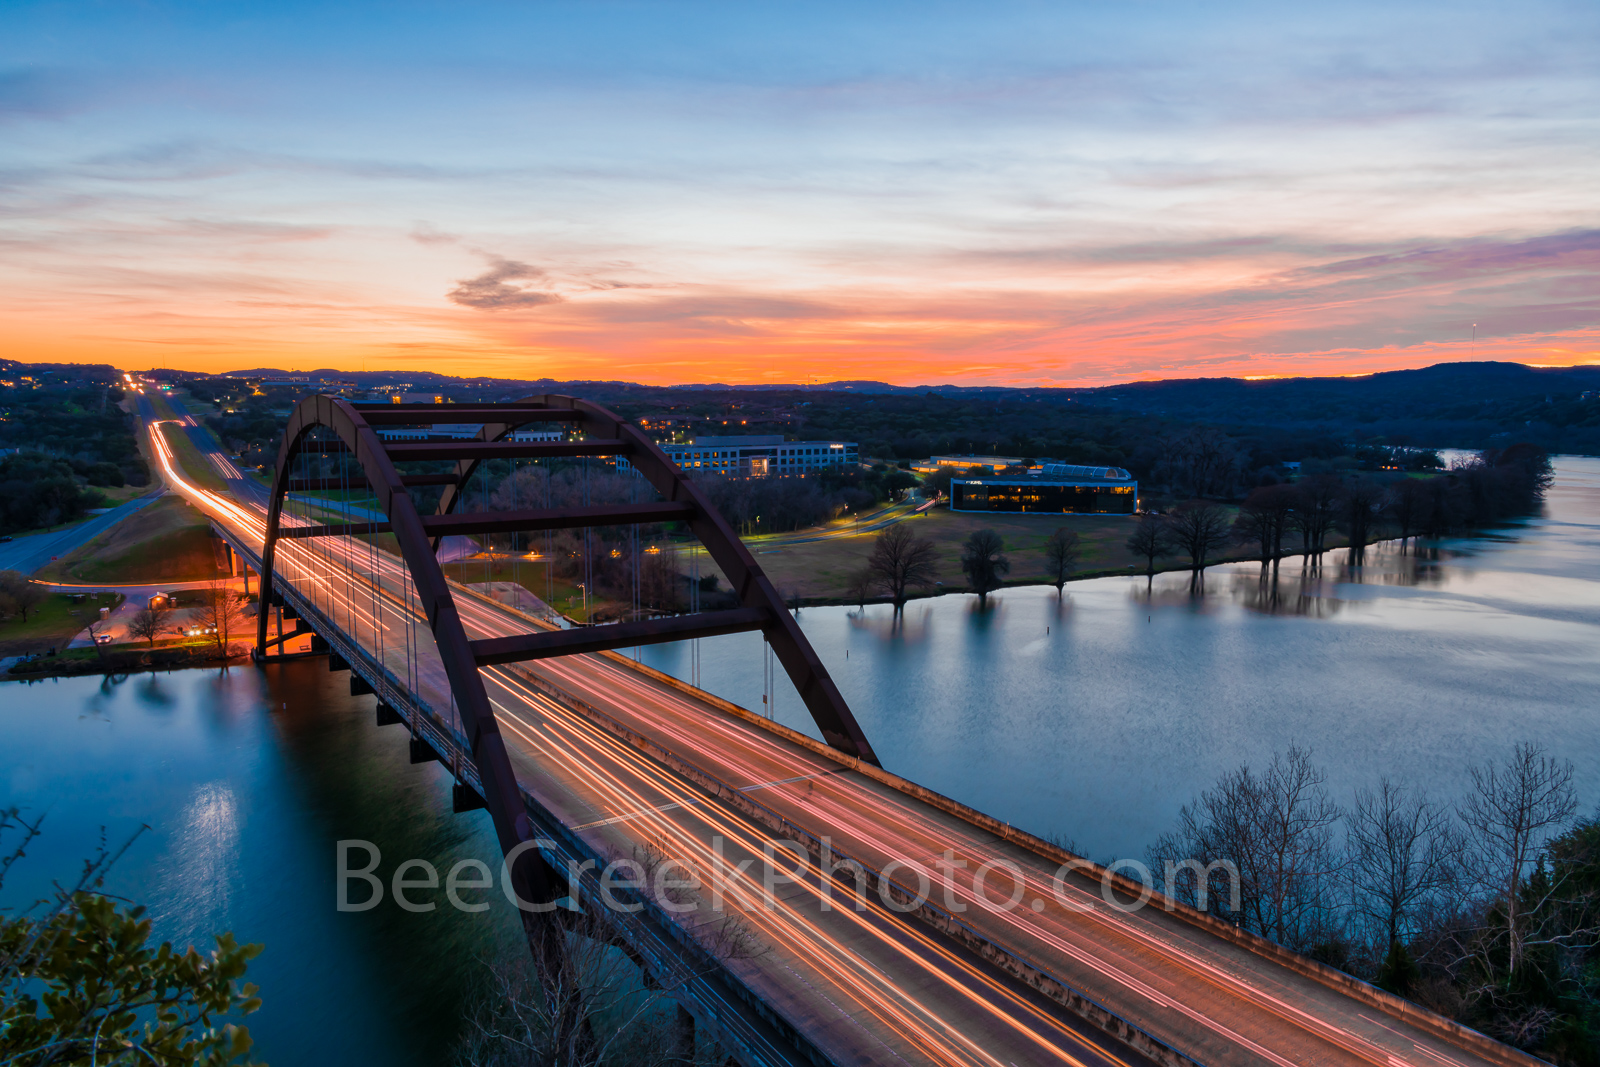 Austin, Pennybacker, bridge, 360 bridge,night, dark, sunset, Lake Austin, colors, texas hill country, texas scenery, boats, hill country,  texas landscape, recreational, boating, swimming, picnicing, , photo